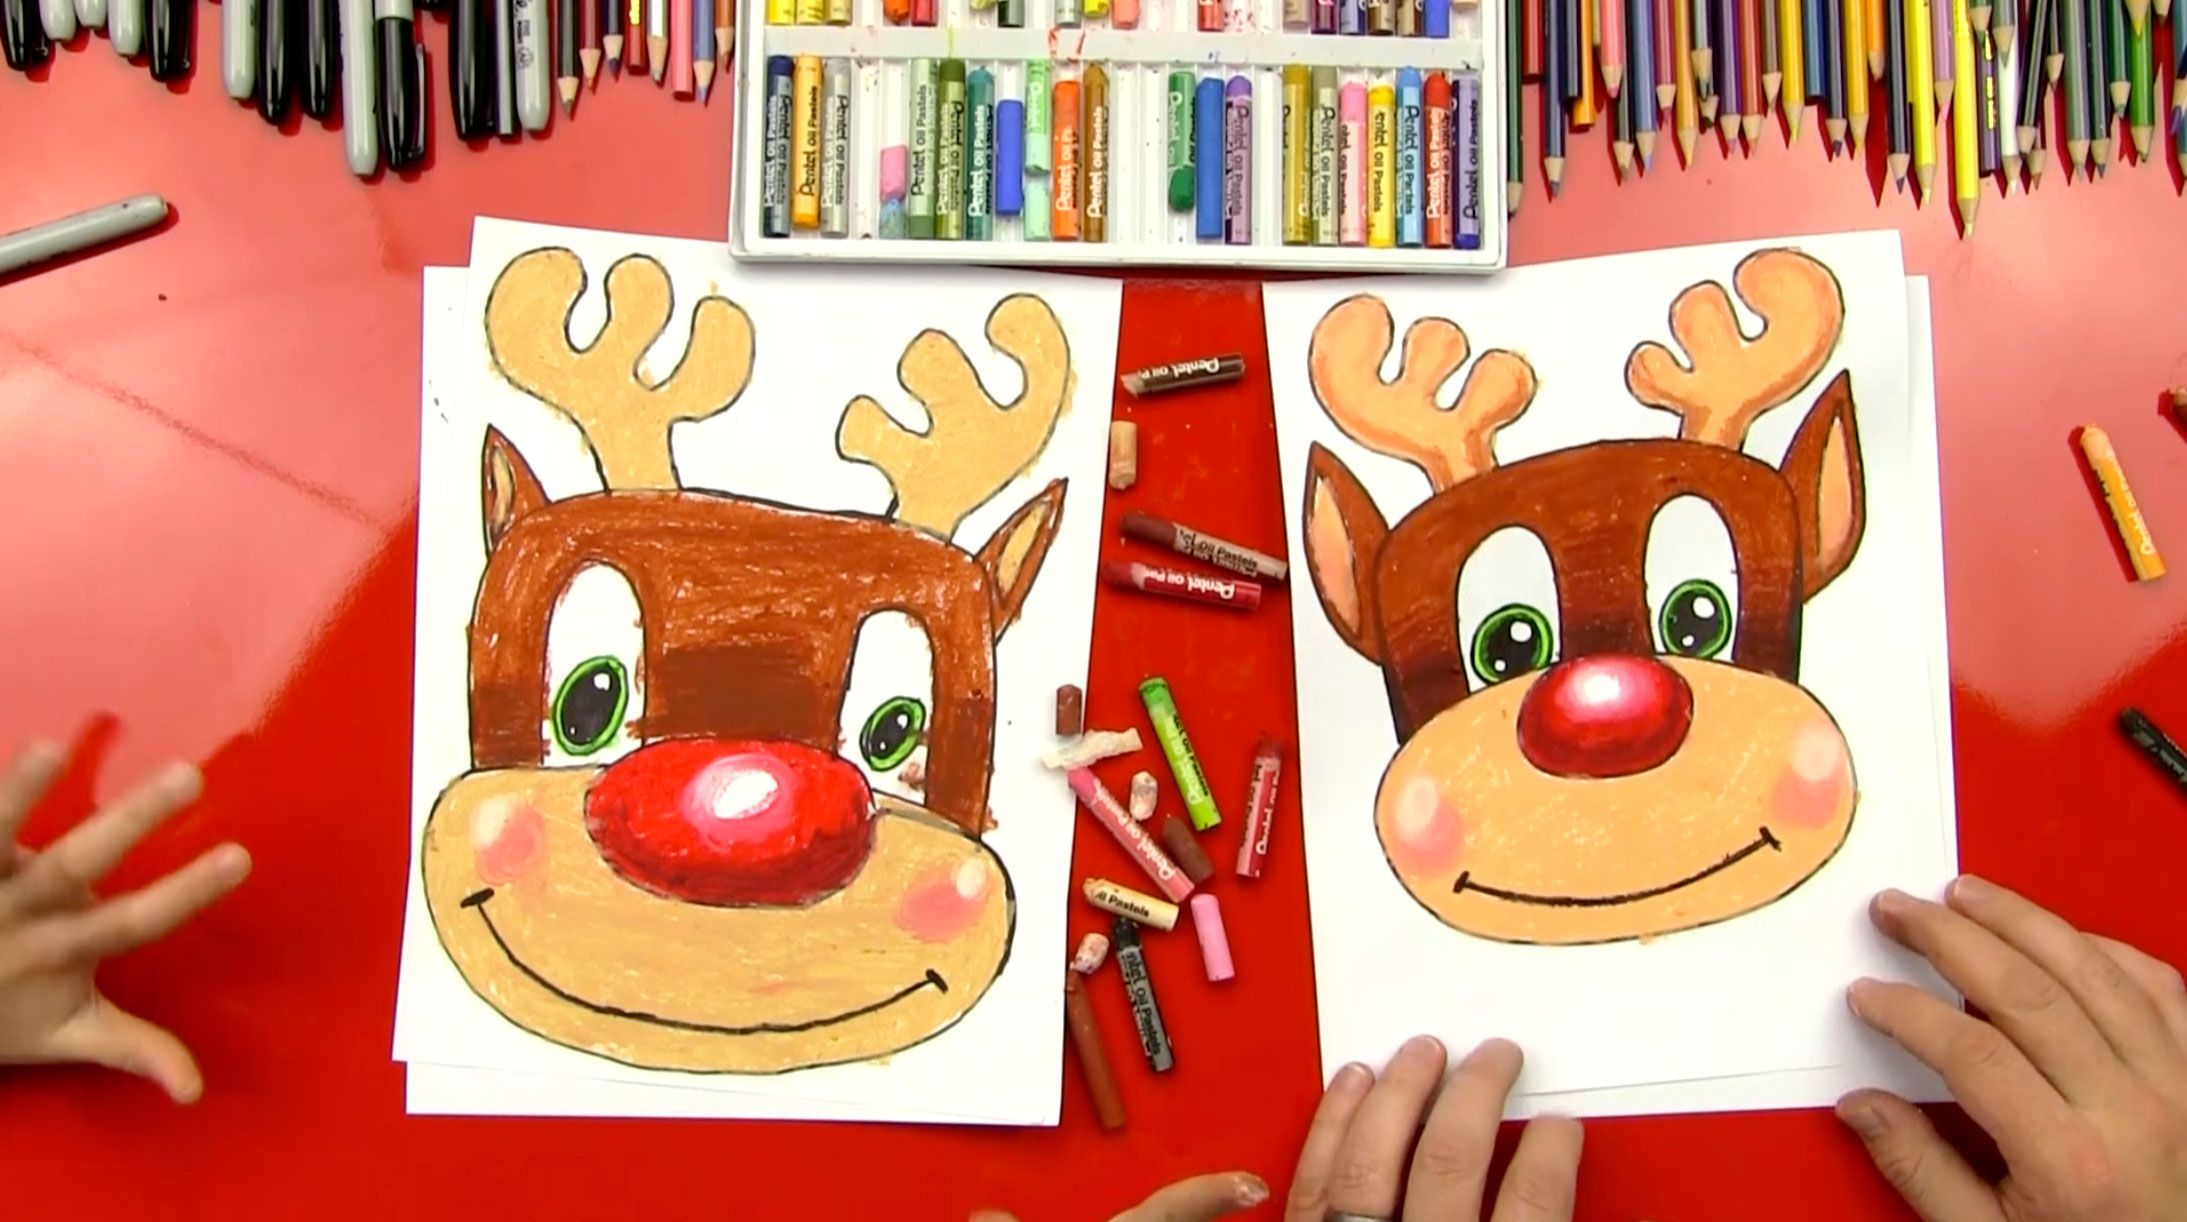 How To Draw Rudolph - Art For Kids Hub - | Art for kids hub, Christmas art for kids, Art for kids